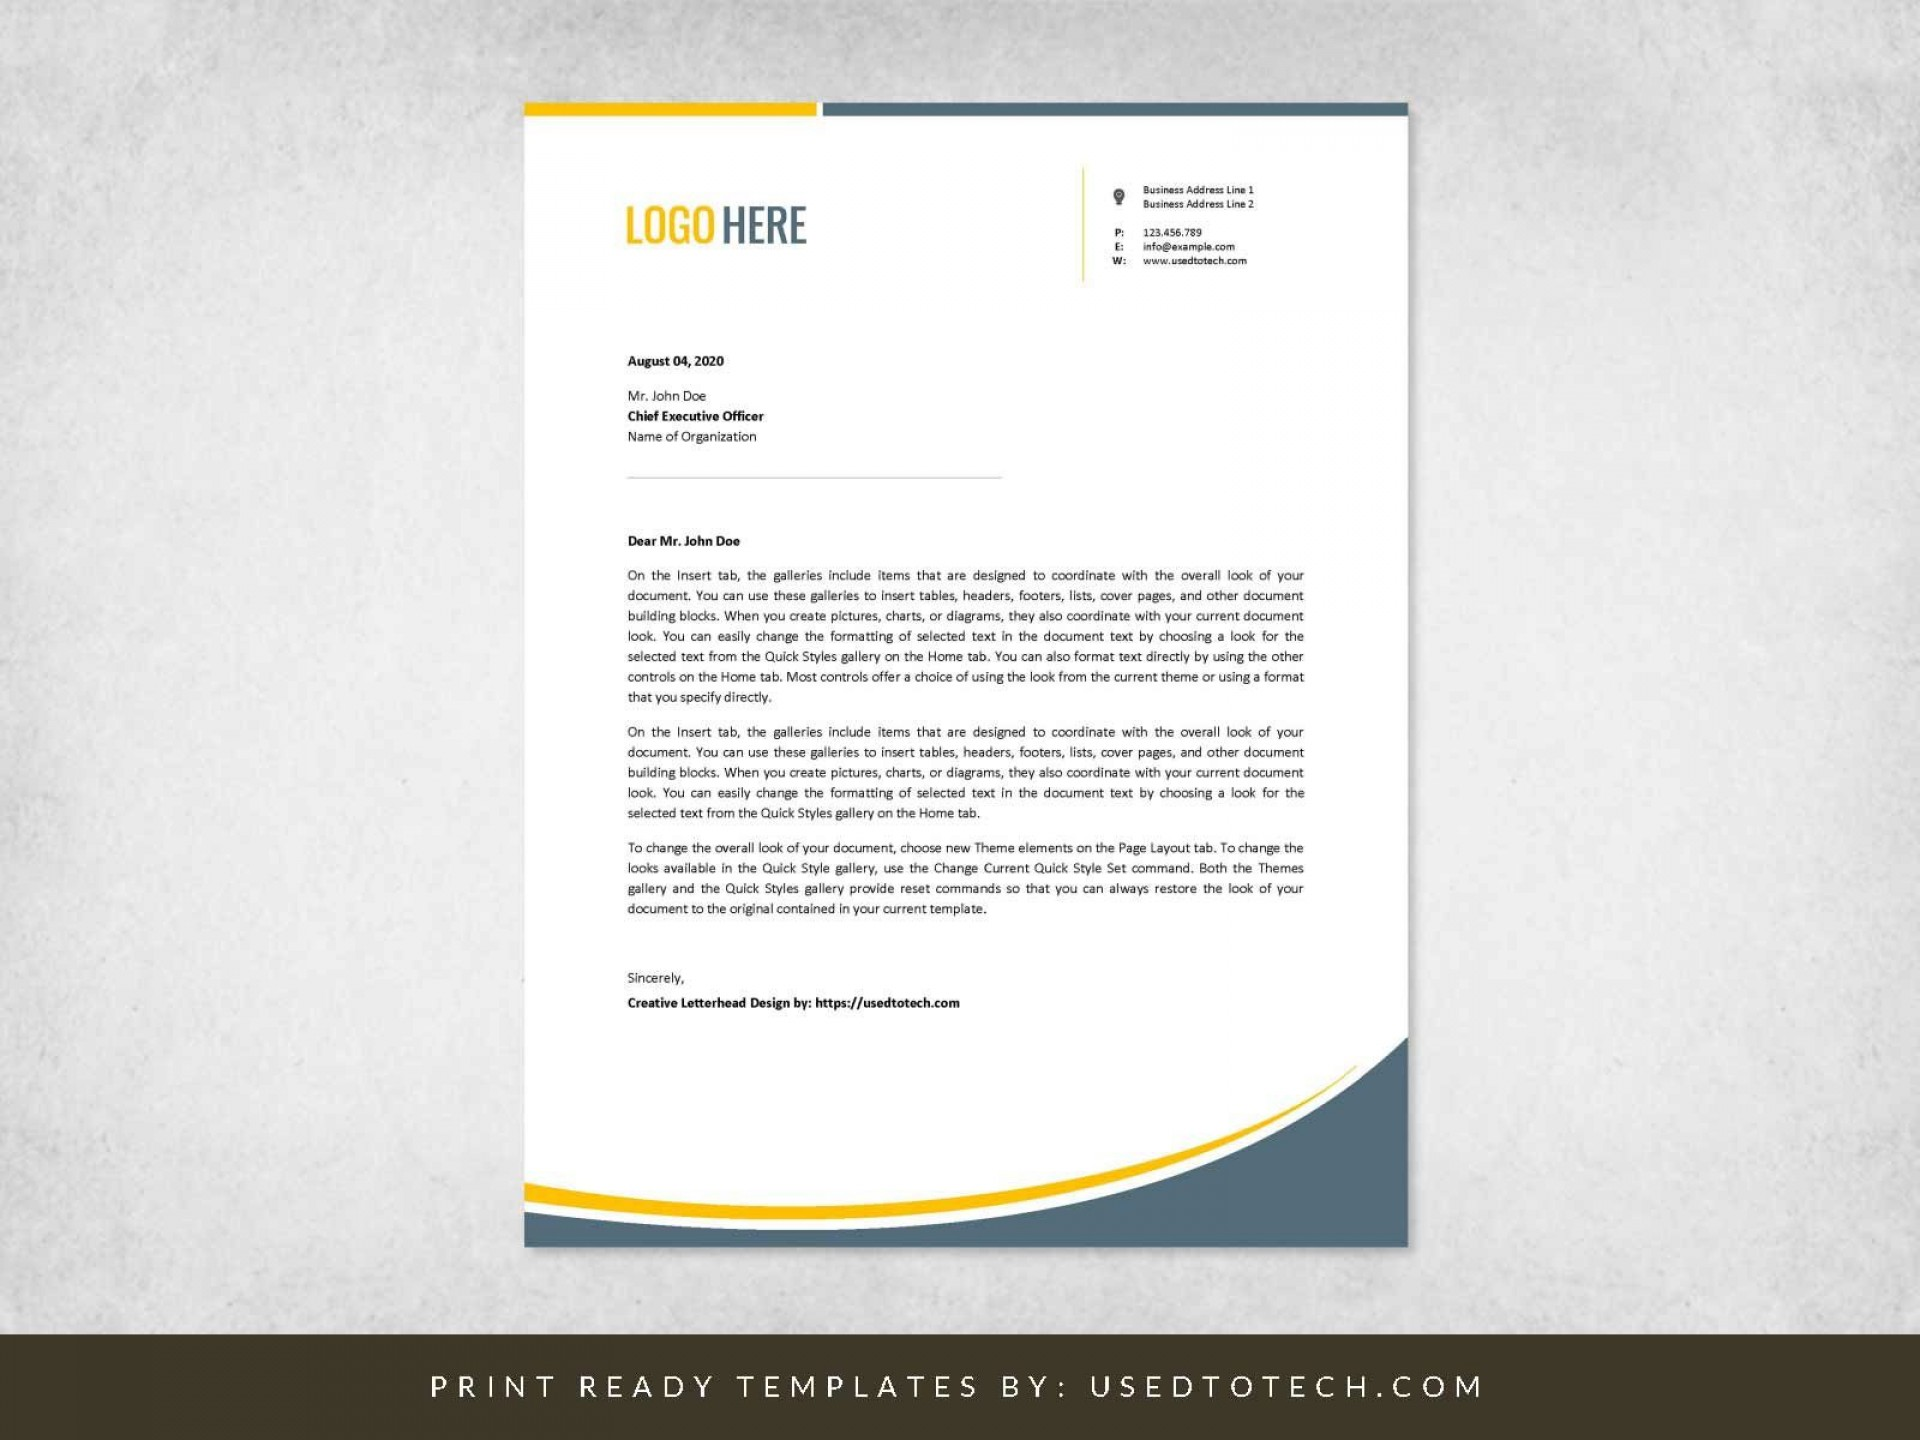 002 Marvelou Letterhead Template Free Download Doc Example  Company Format Doctor1920